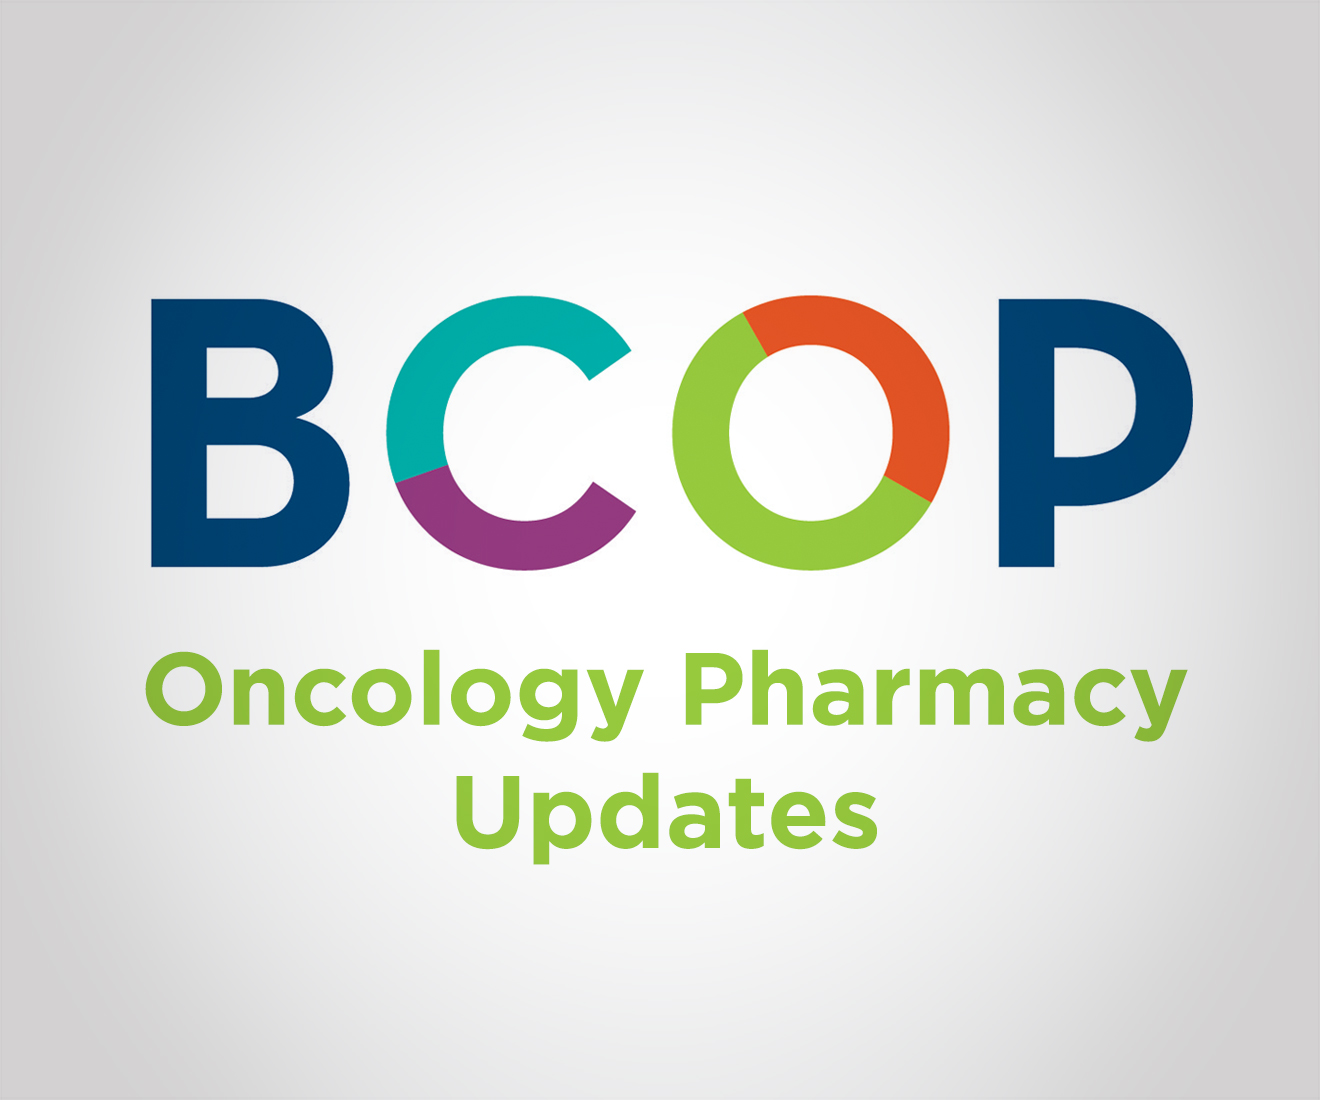 BCOP Oncology Pharmacy Updates logo